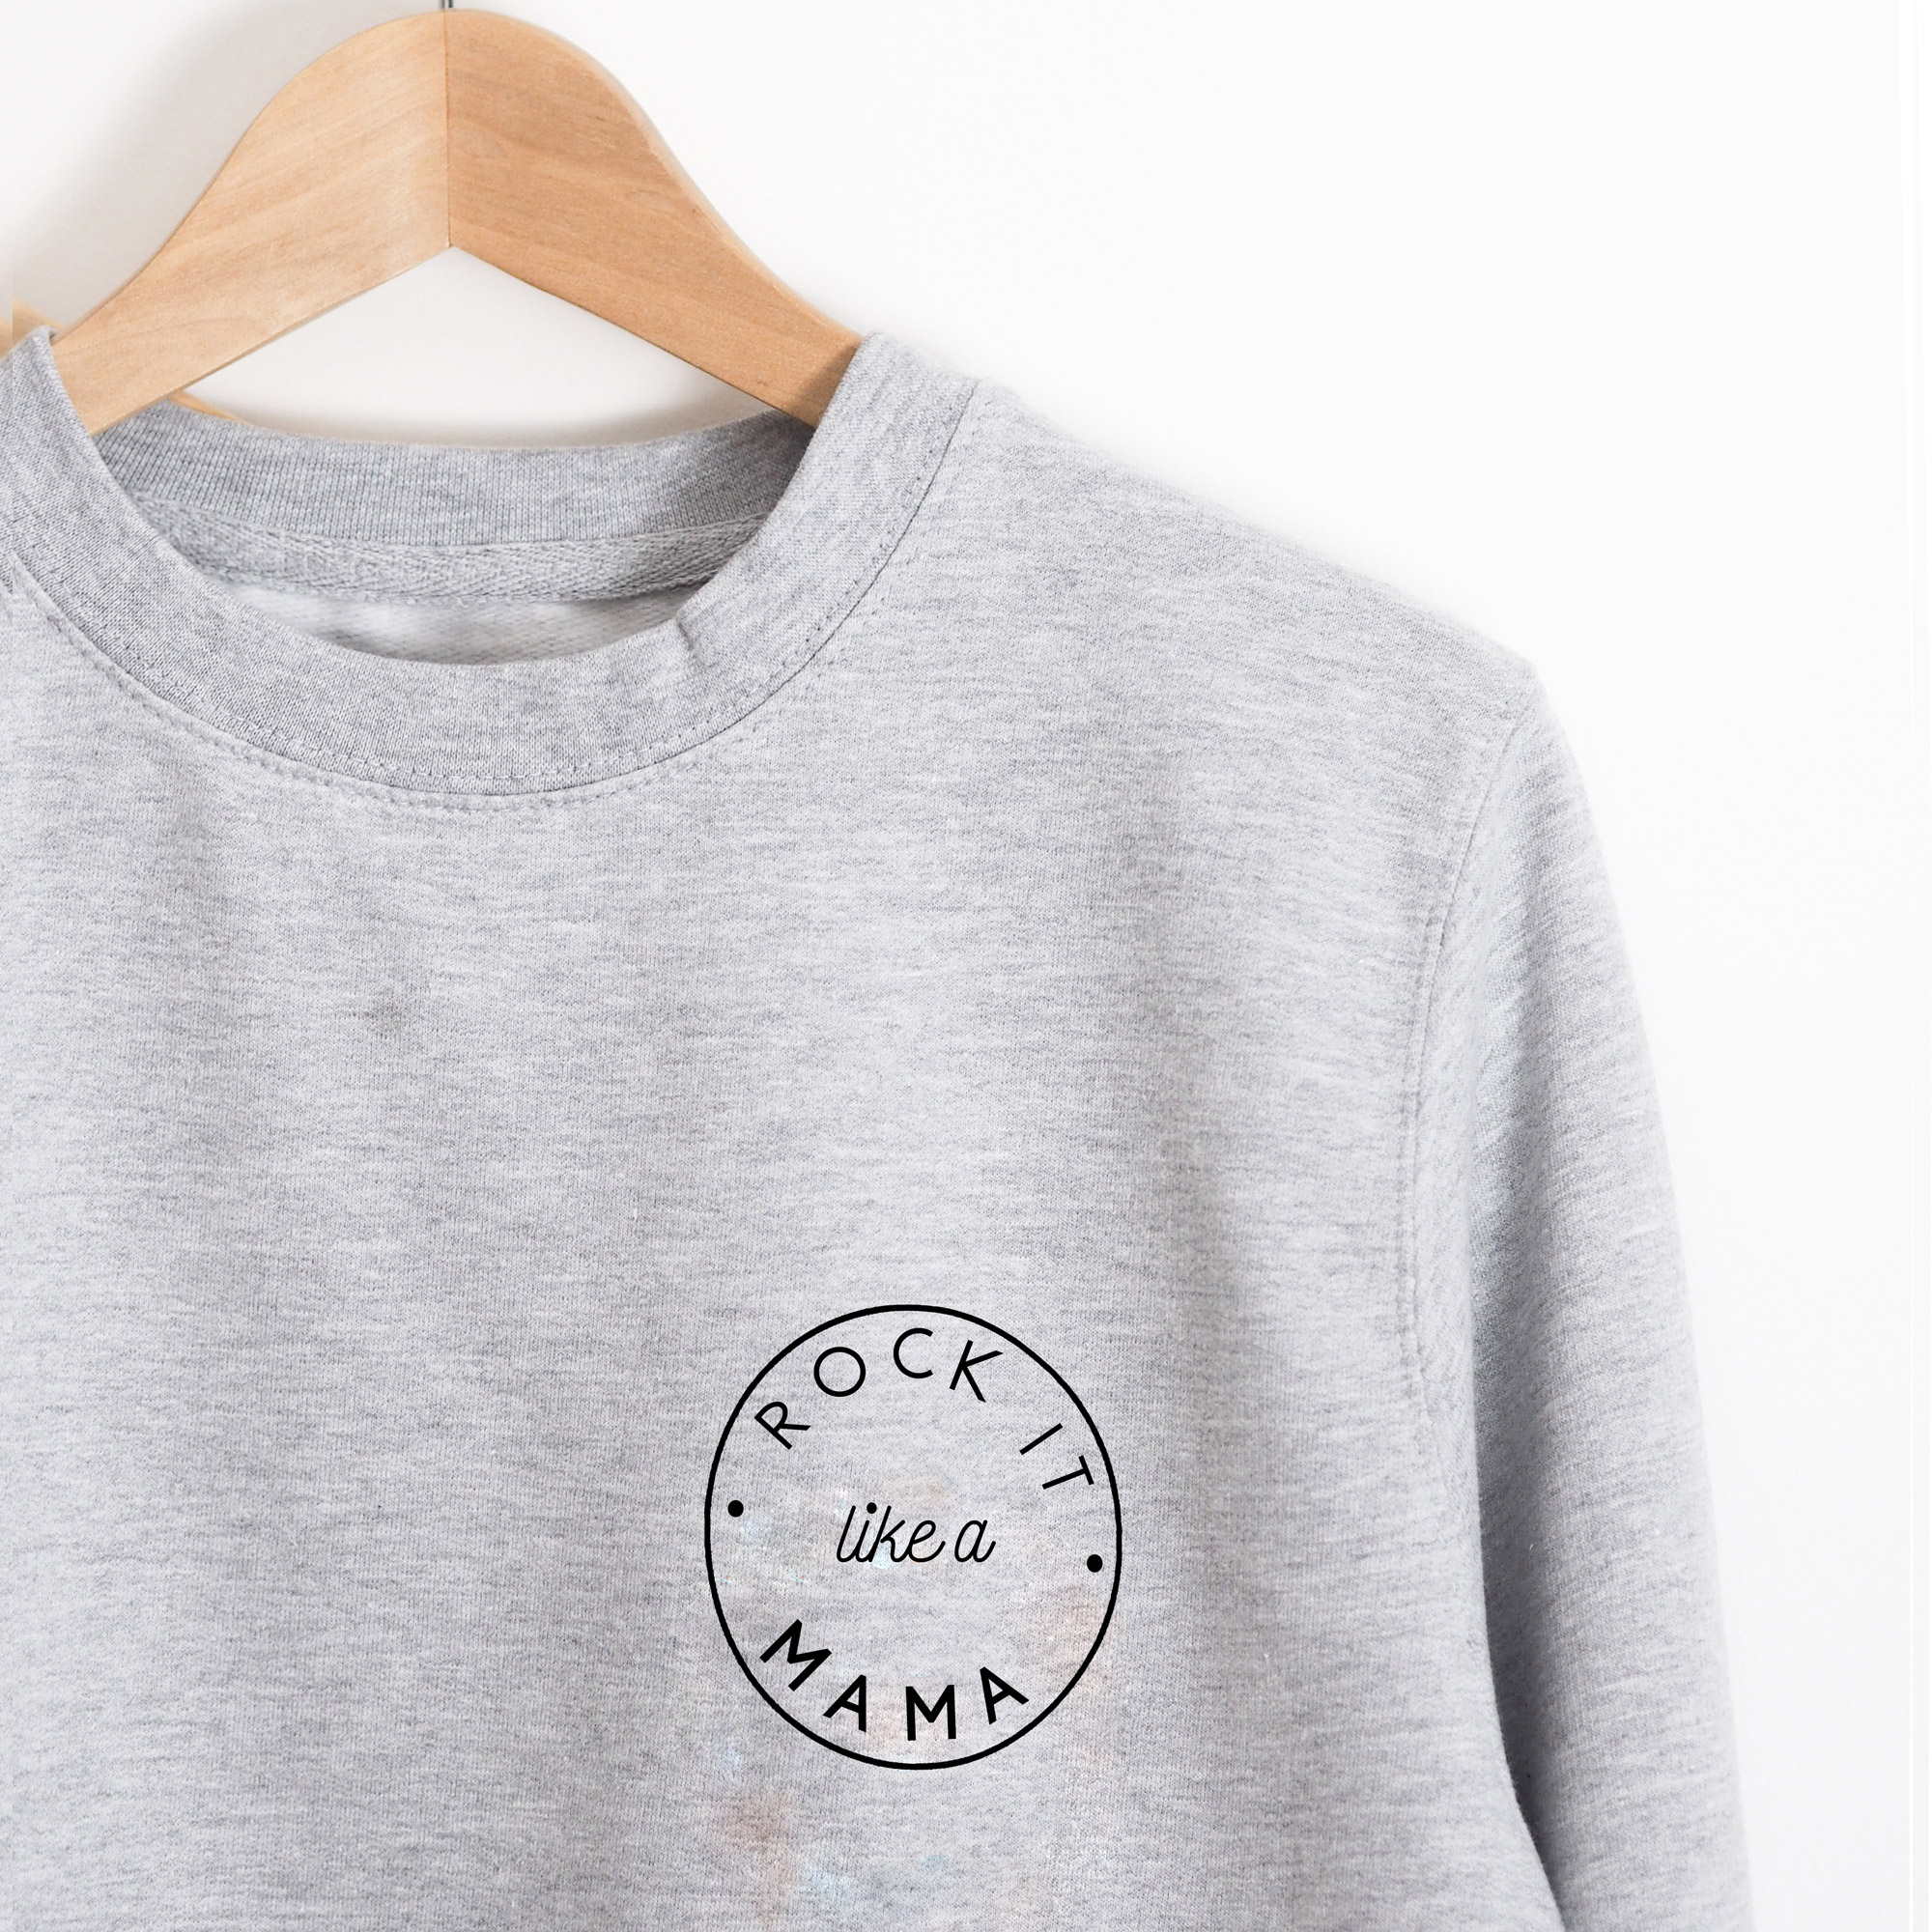 rock it like a mama sweatshirt